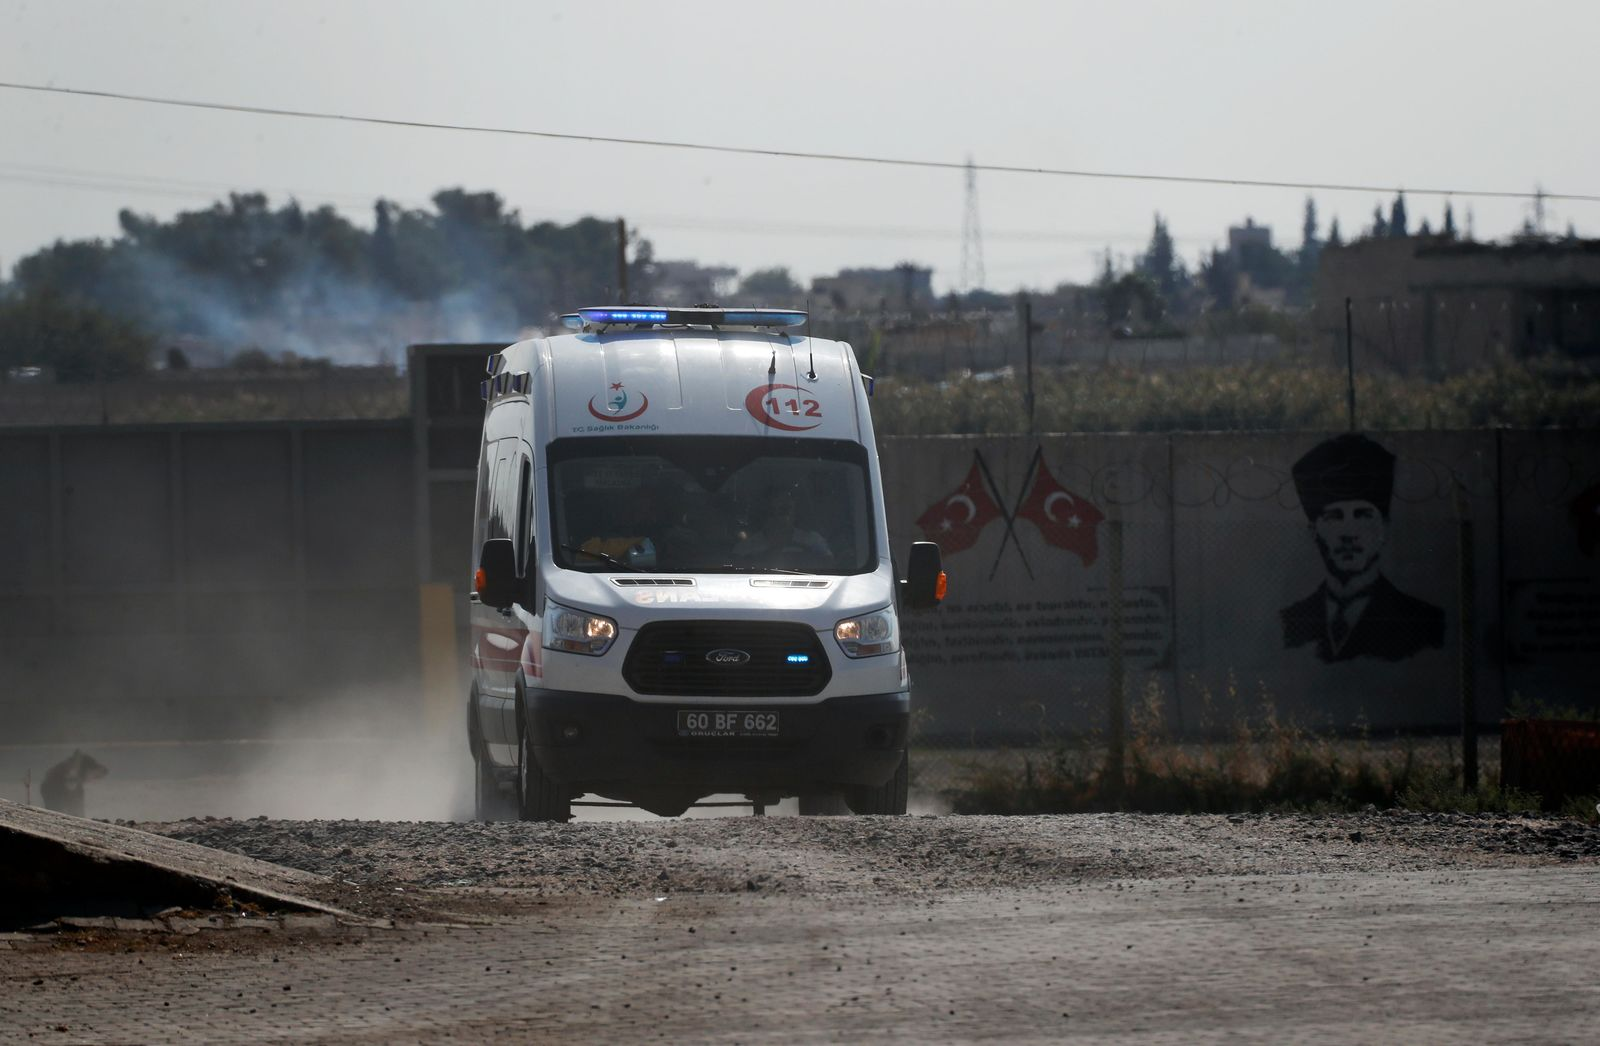 An ambulance returns from Tal Abyad, Syria, at the border in the town of Akcakale,  Sanliurfa province, southeastern Turkey, Monday, Oct. 21, 2019. Turkey's President Recep Tayyip Erdogan is scheduled to meet Tuesday with Russian leader Vladimir Putin and the conflict between Turkey and the Kurds is expected to be the focus of their discussions. (AP Photo/Lefteris Pitarakis)